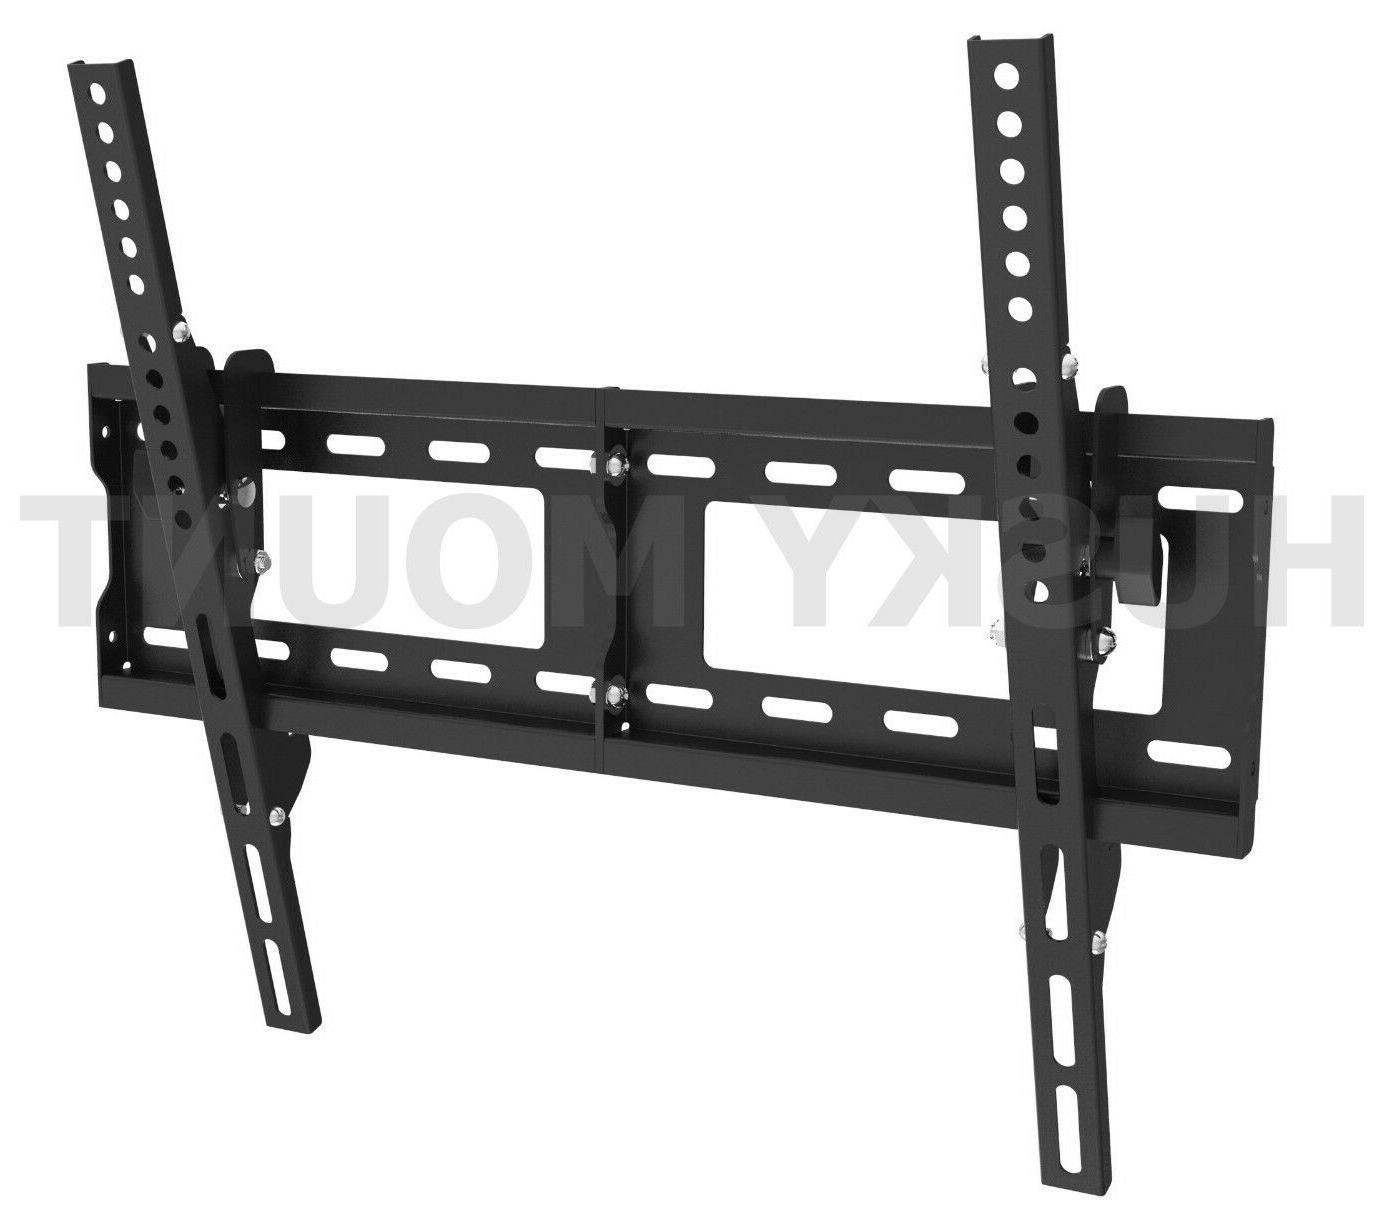 Husky 24 - 65 Inch TV Wall Profile TV Bracket Fits most 24 40 42 47 52 55 LED Screen. and lbs Steel. all necessary hardware and warranty.